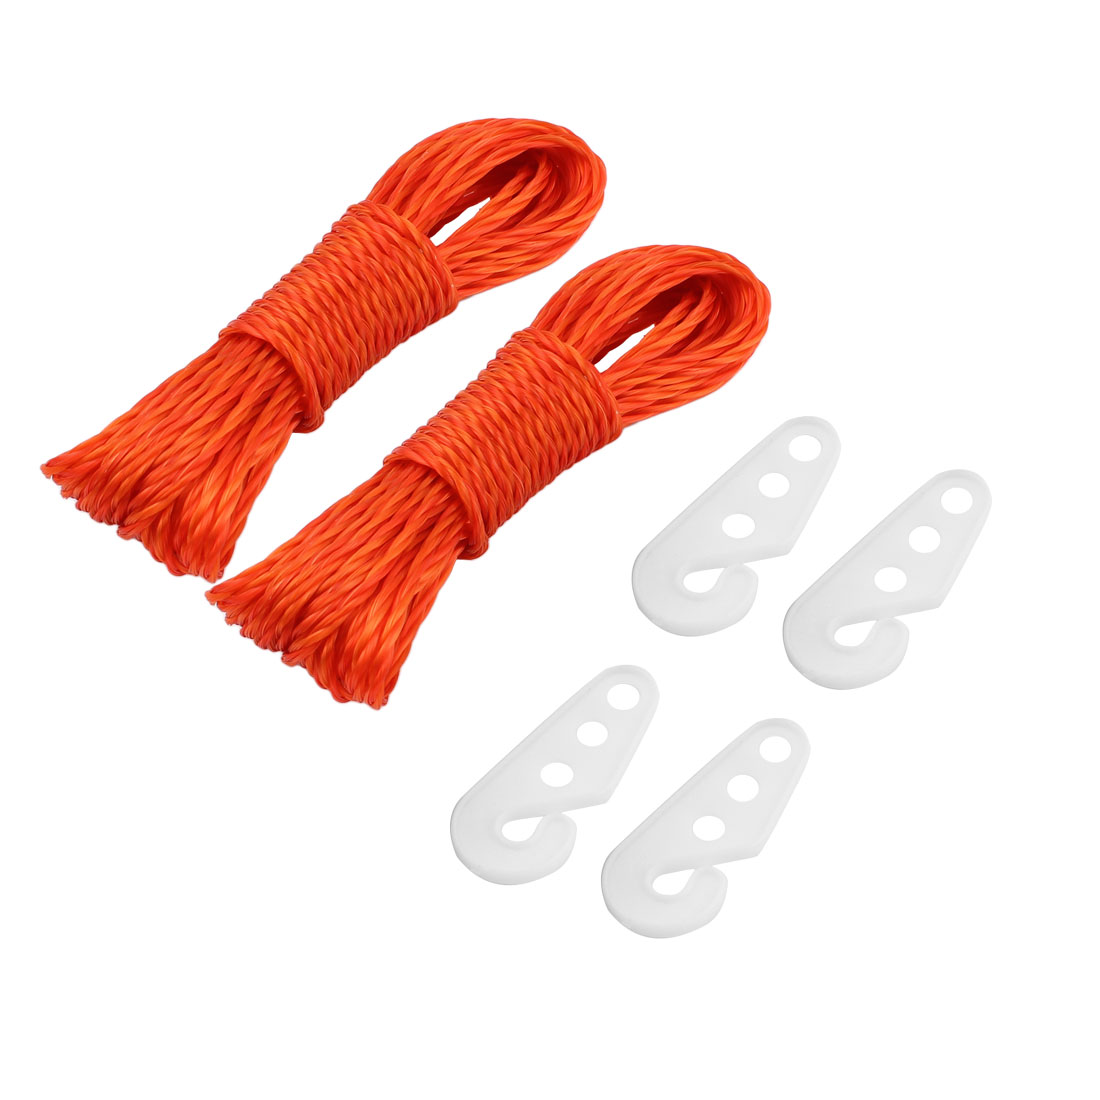 Camping Outdoor Laundry Nylon Clothesline Clothes Towels Hanger Line Rope String w Hooks 33Ft 10M Orange 2pcs